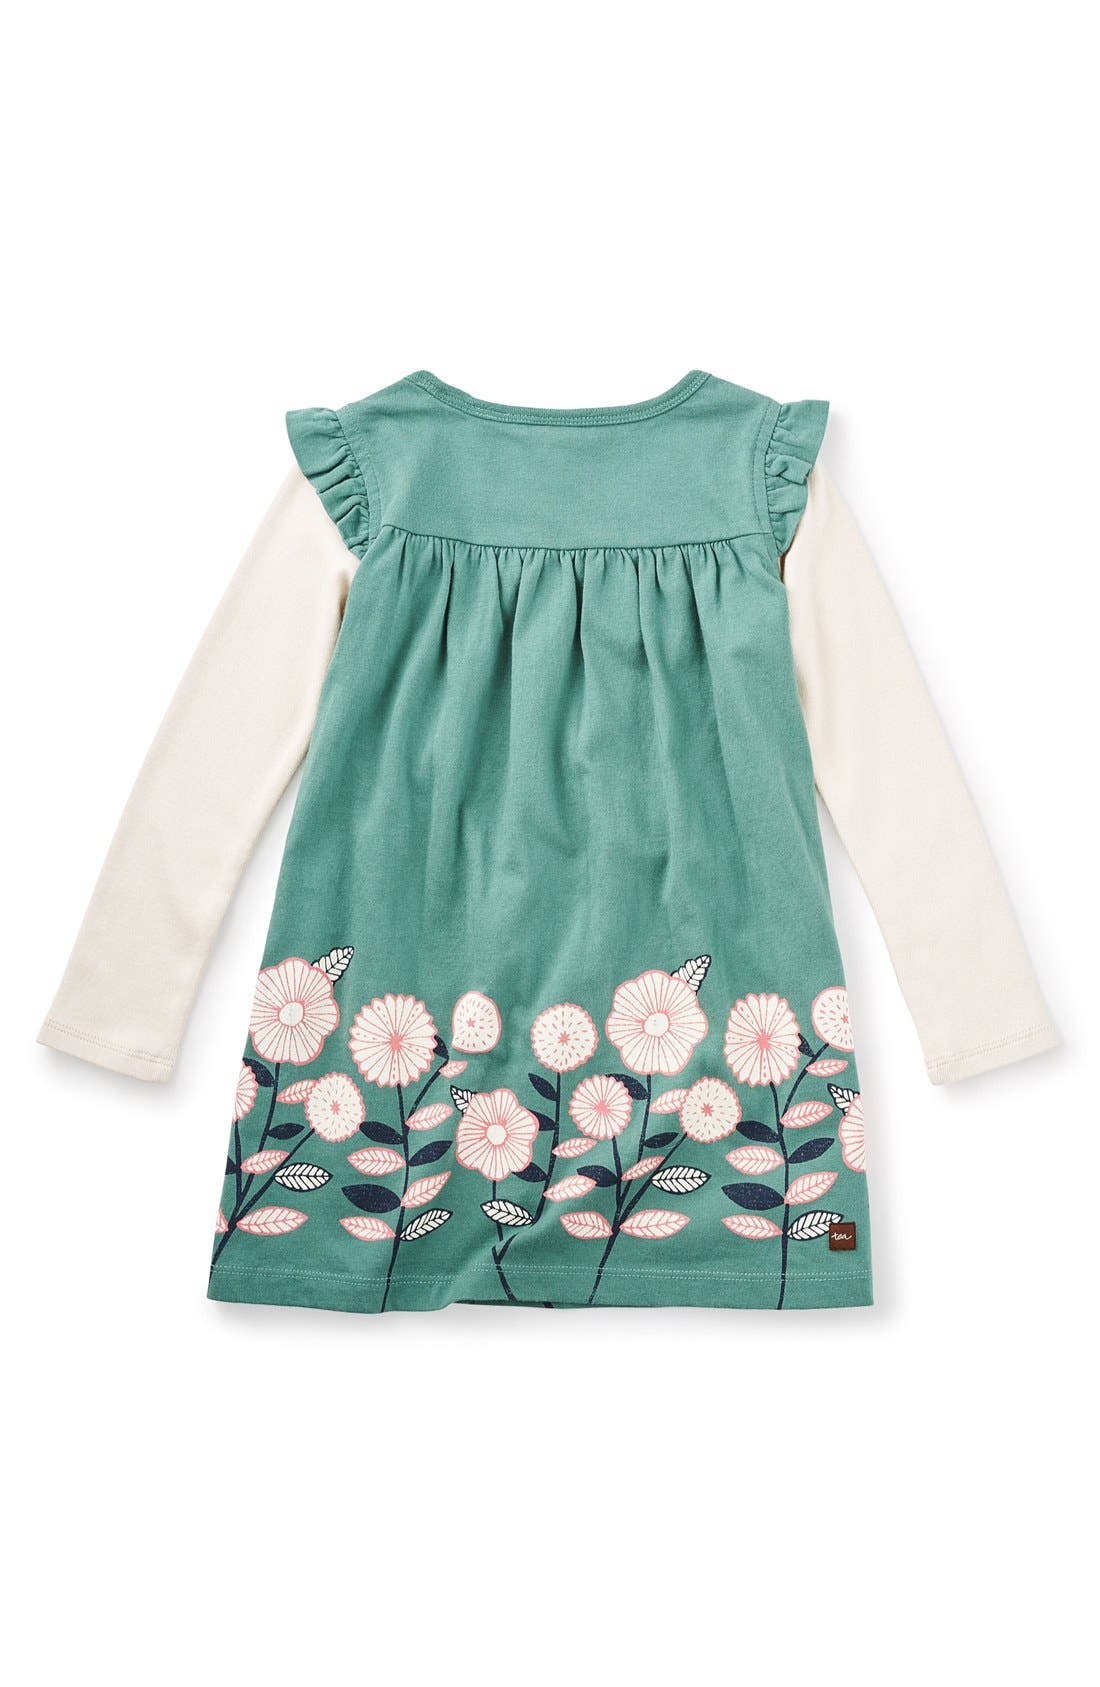 Alternate Image 2  - Tea Collection 'Midori - Double Decker' Layered Dress (Toddler Girls, Little Girls & Big Girls)